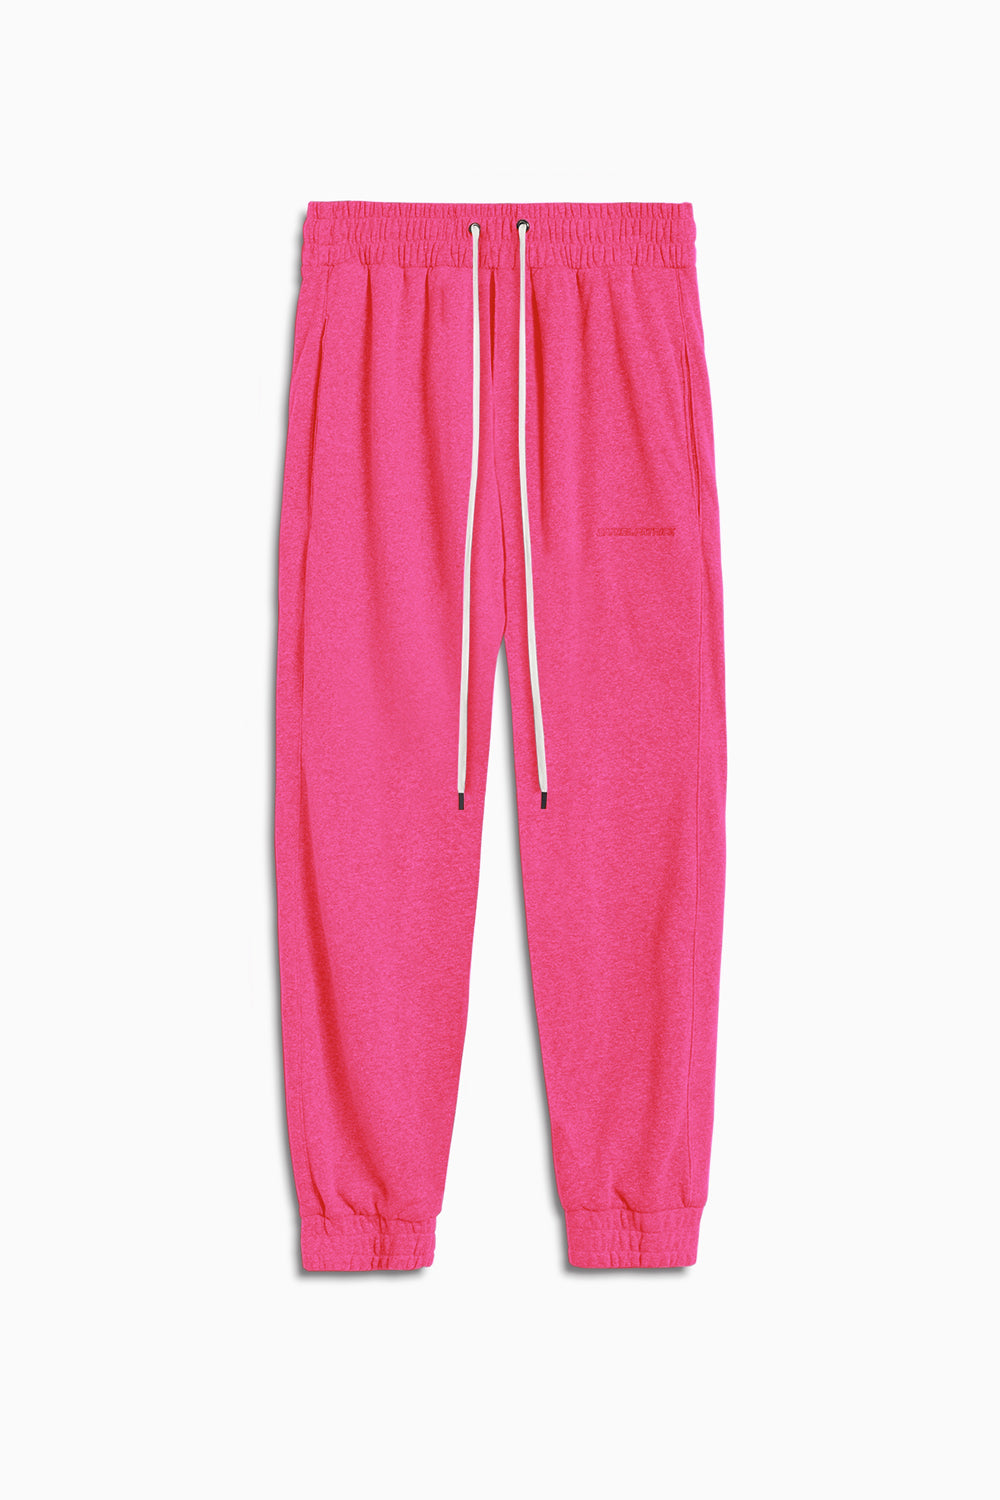 loop terry roaming sweatpants / wildflower pink